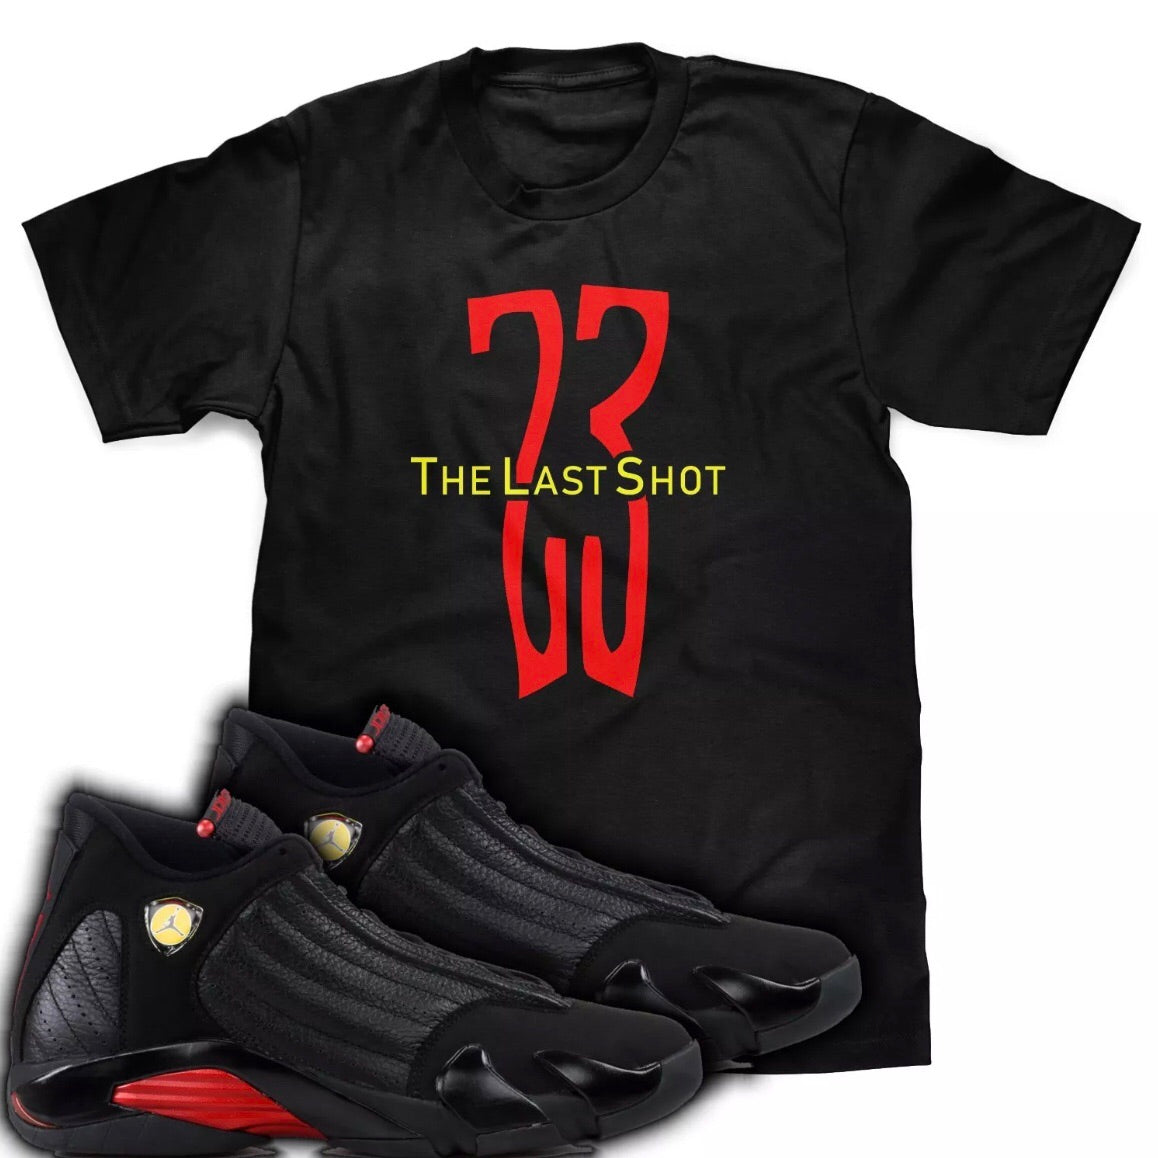 The Last Shot Tee (Designed to match Air Jordan 14 Sneakers)